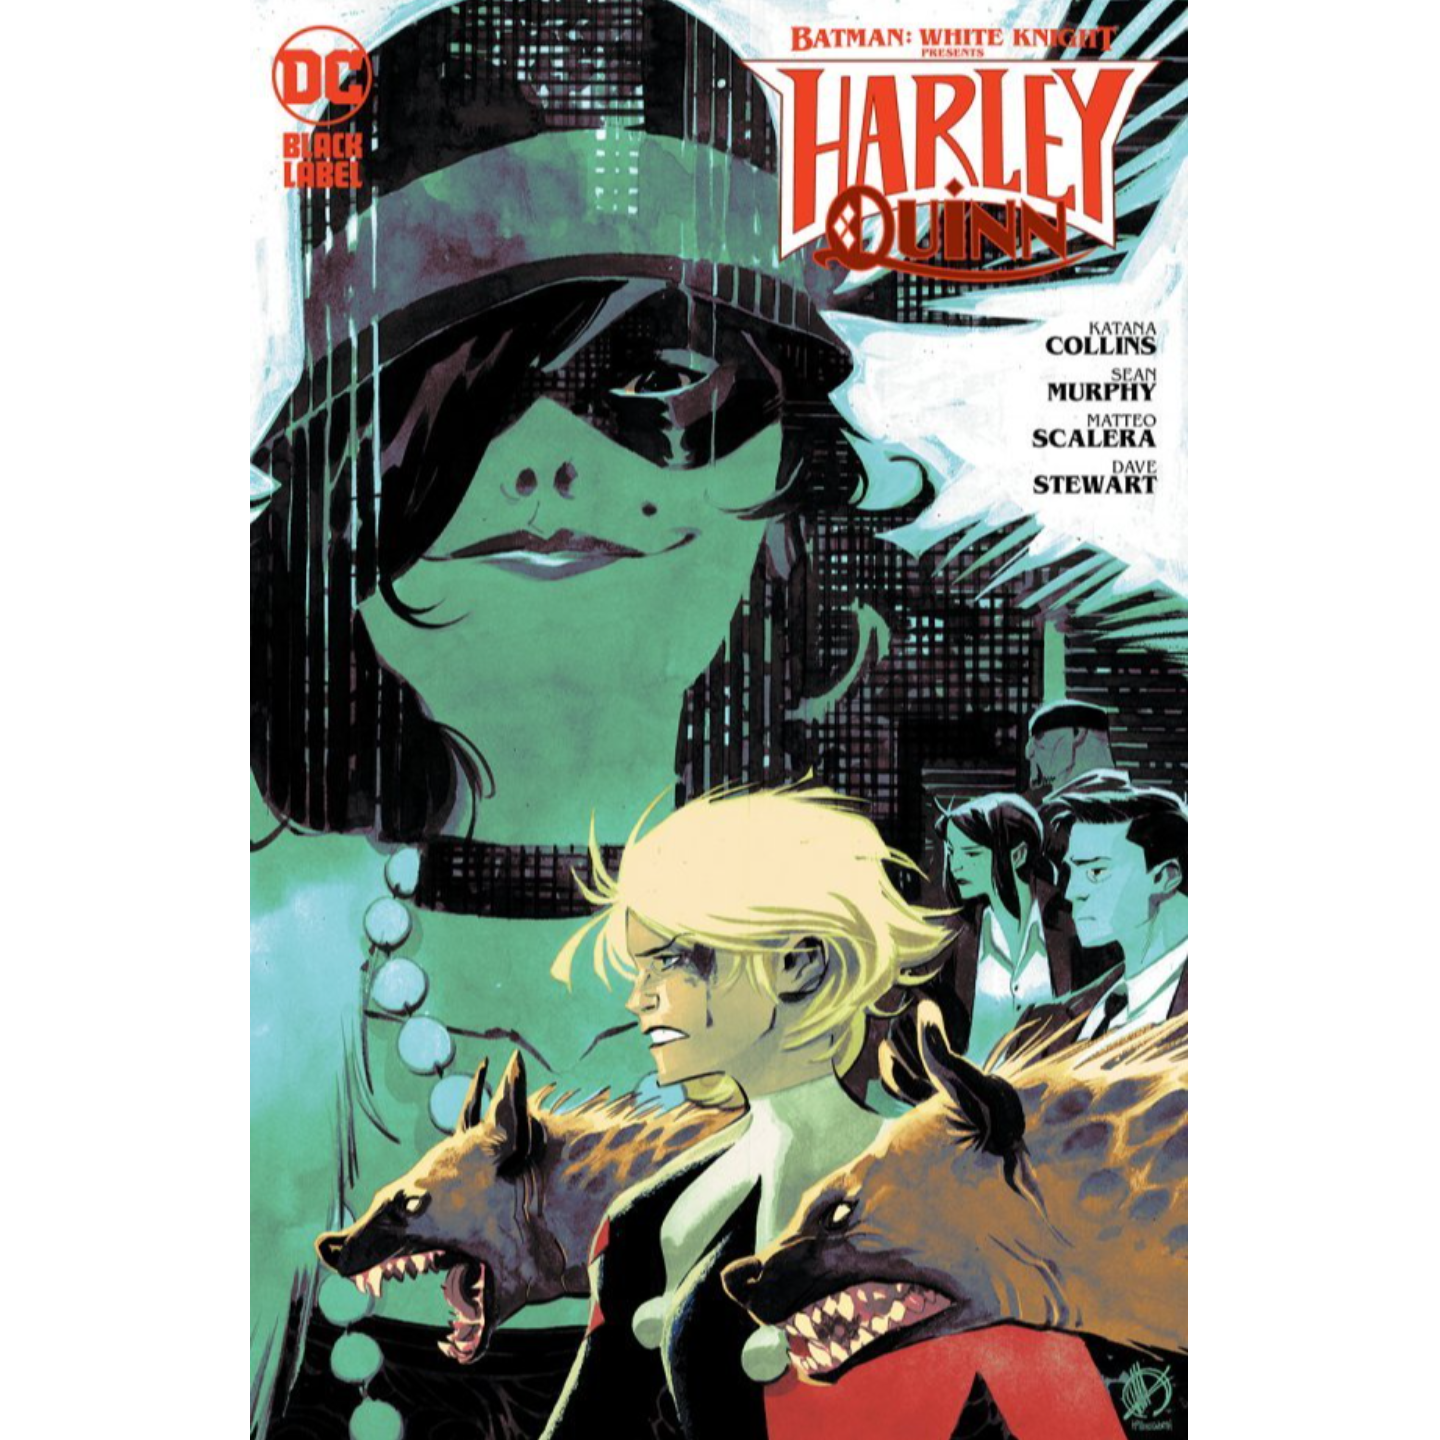 BATMAN WHITE KNIGHT PRESENTS HARLEY QUINN #3 (OF 6) CVR B MATTEO SCALERA VAR (MR)